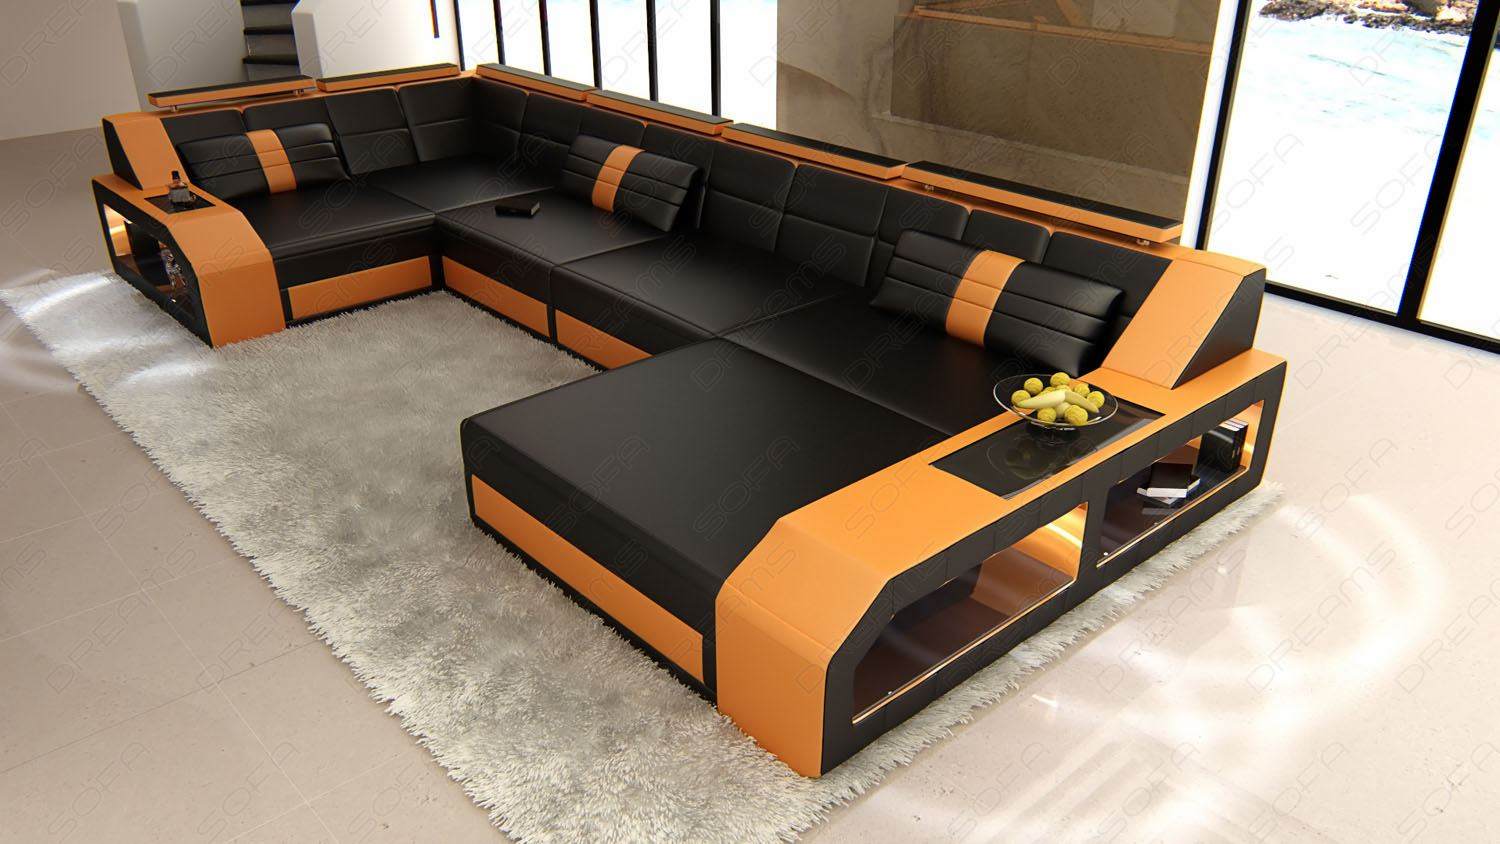 ecksofa wohnlandschaft arezzo u form designersofa beleuchtung ebay. Black Bedroom Furniture Sets. Home Design Ideas